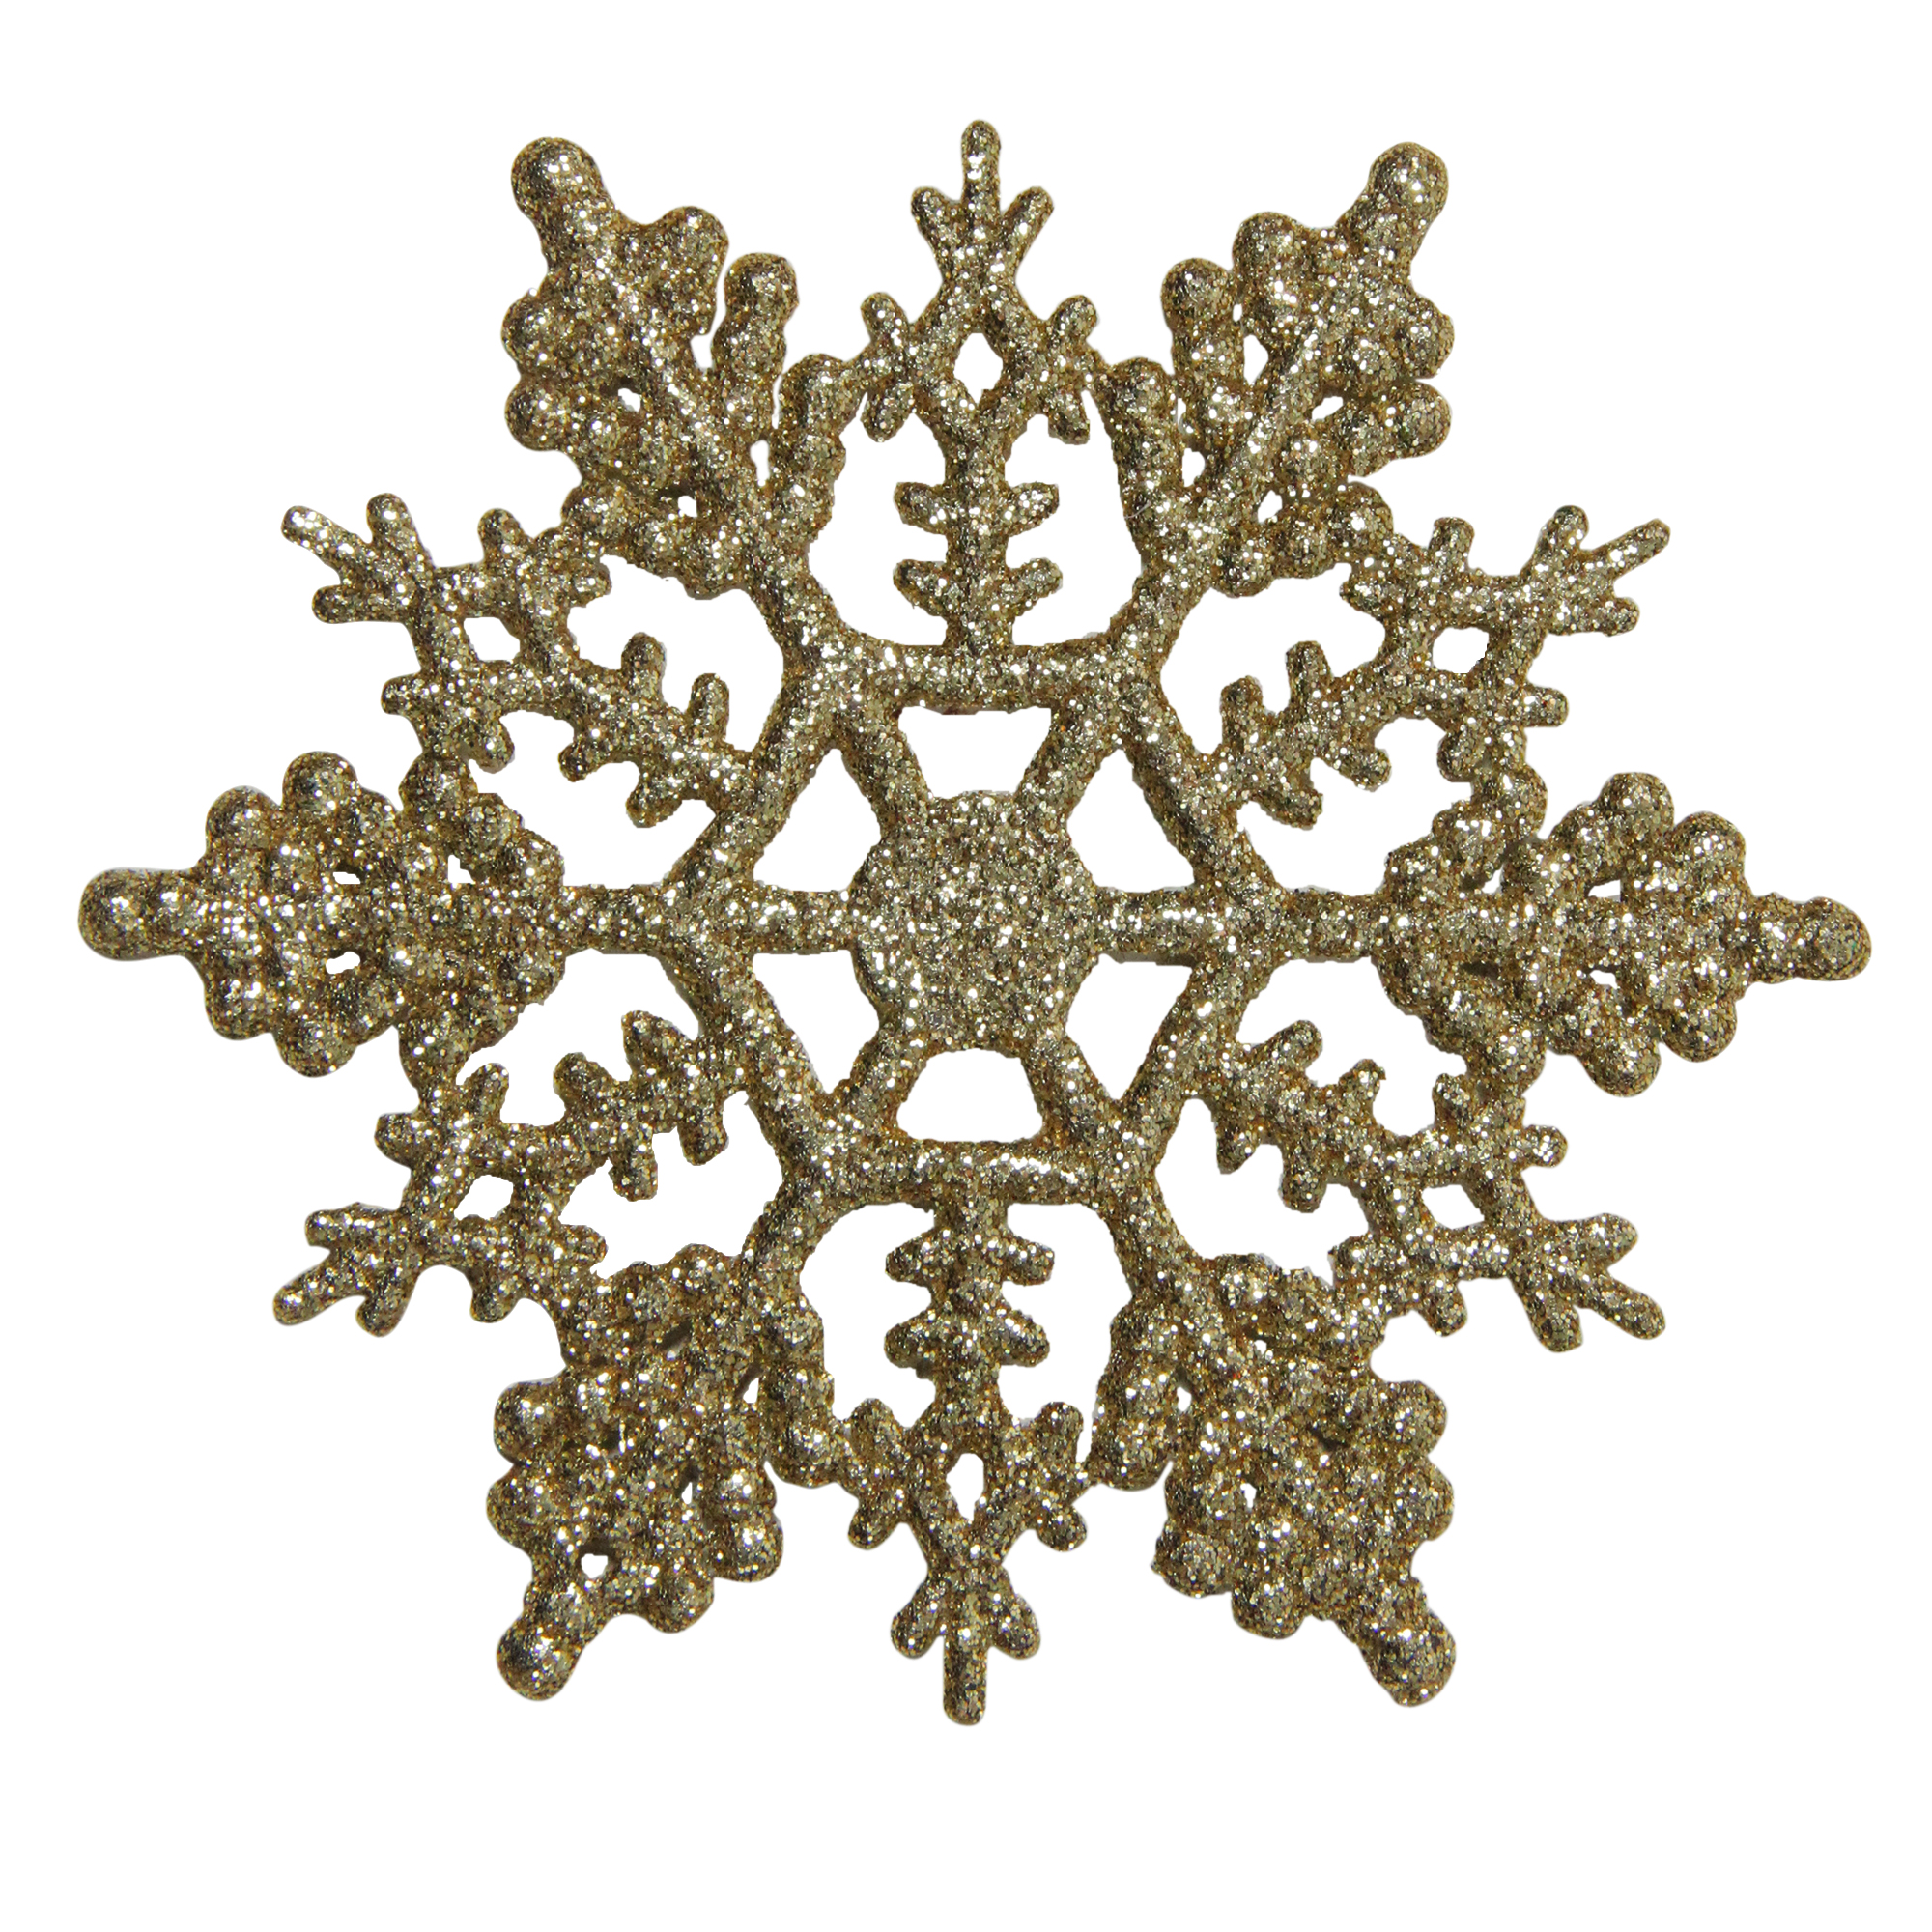 "Northlight 24ct Shimmering Glitter Snowflake Christmas Ornament Set 3.75"" - Gold"